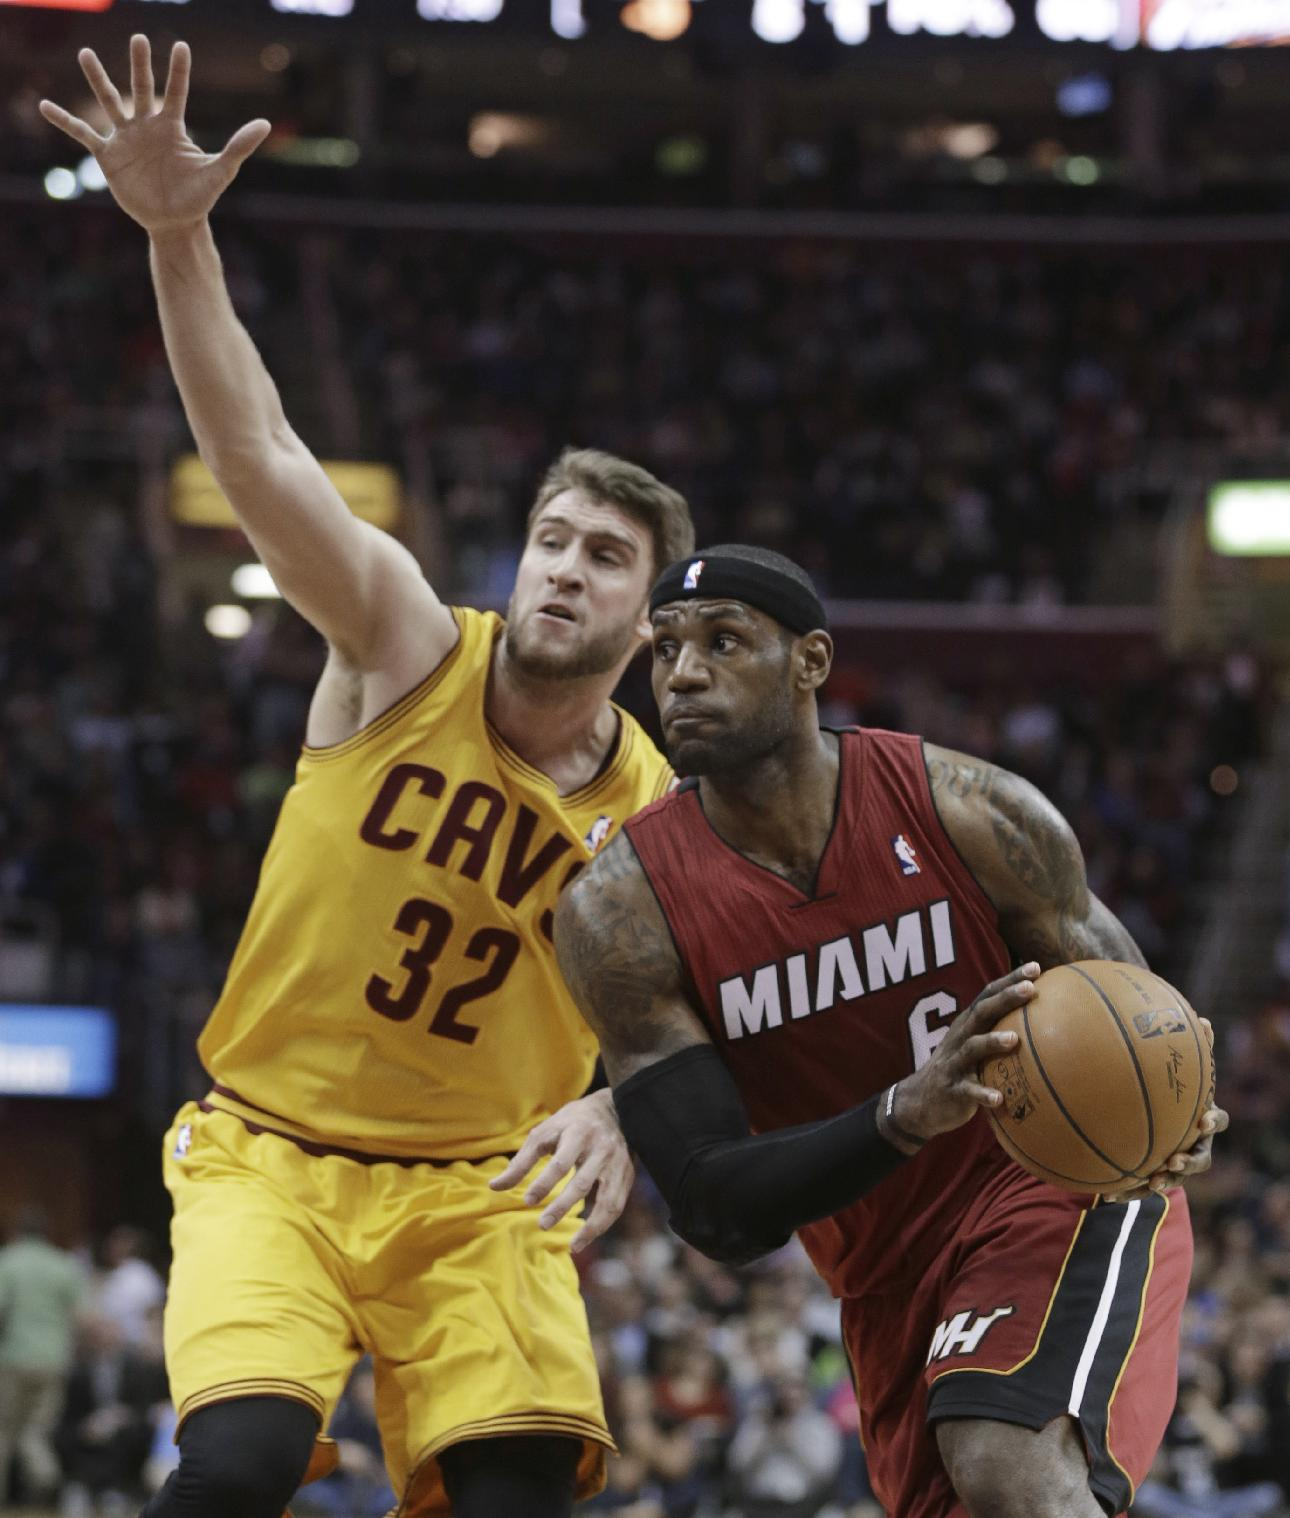 Miami Heat's LeBron James (6) drives around Cleveland Cavaliers' Spencer Hawes (32) during the first quarter of an NBA basketball game Tuesday, March 18, 2014, in Cleveland